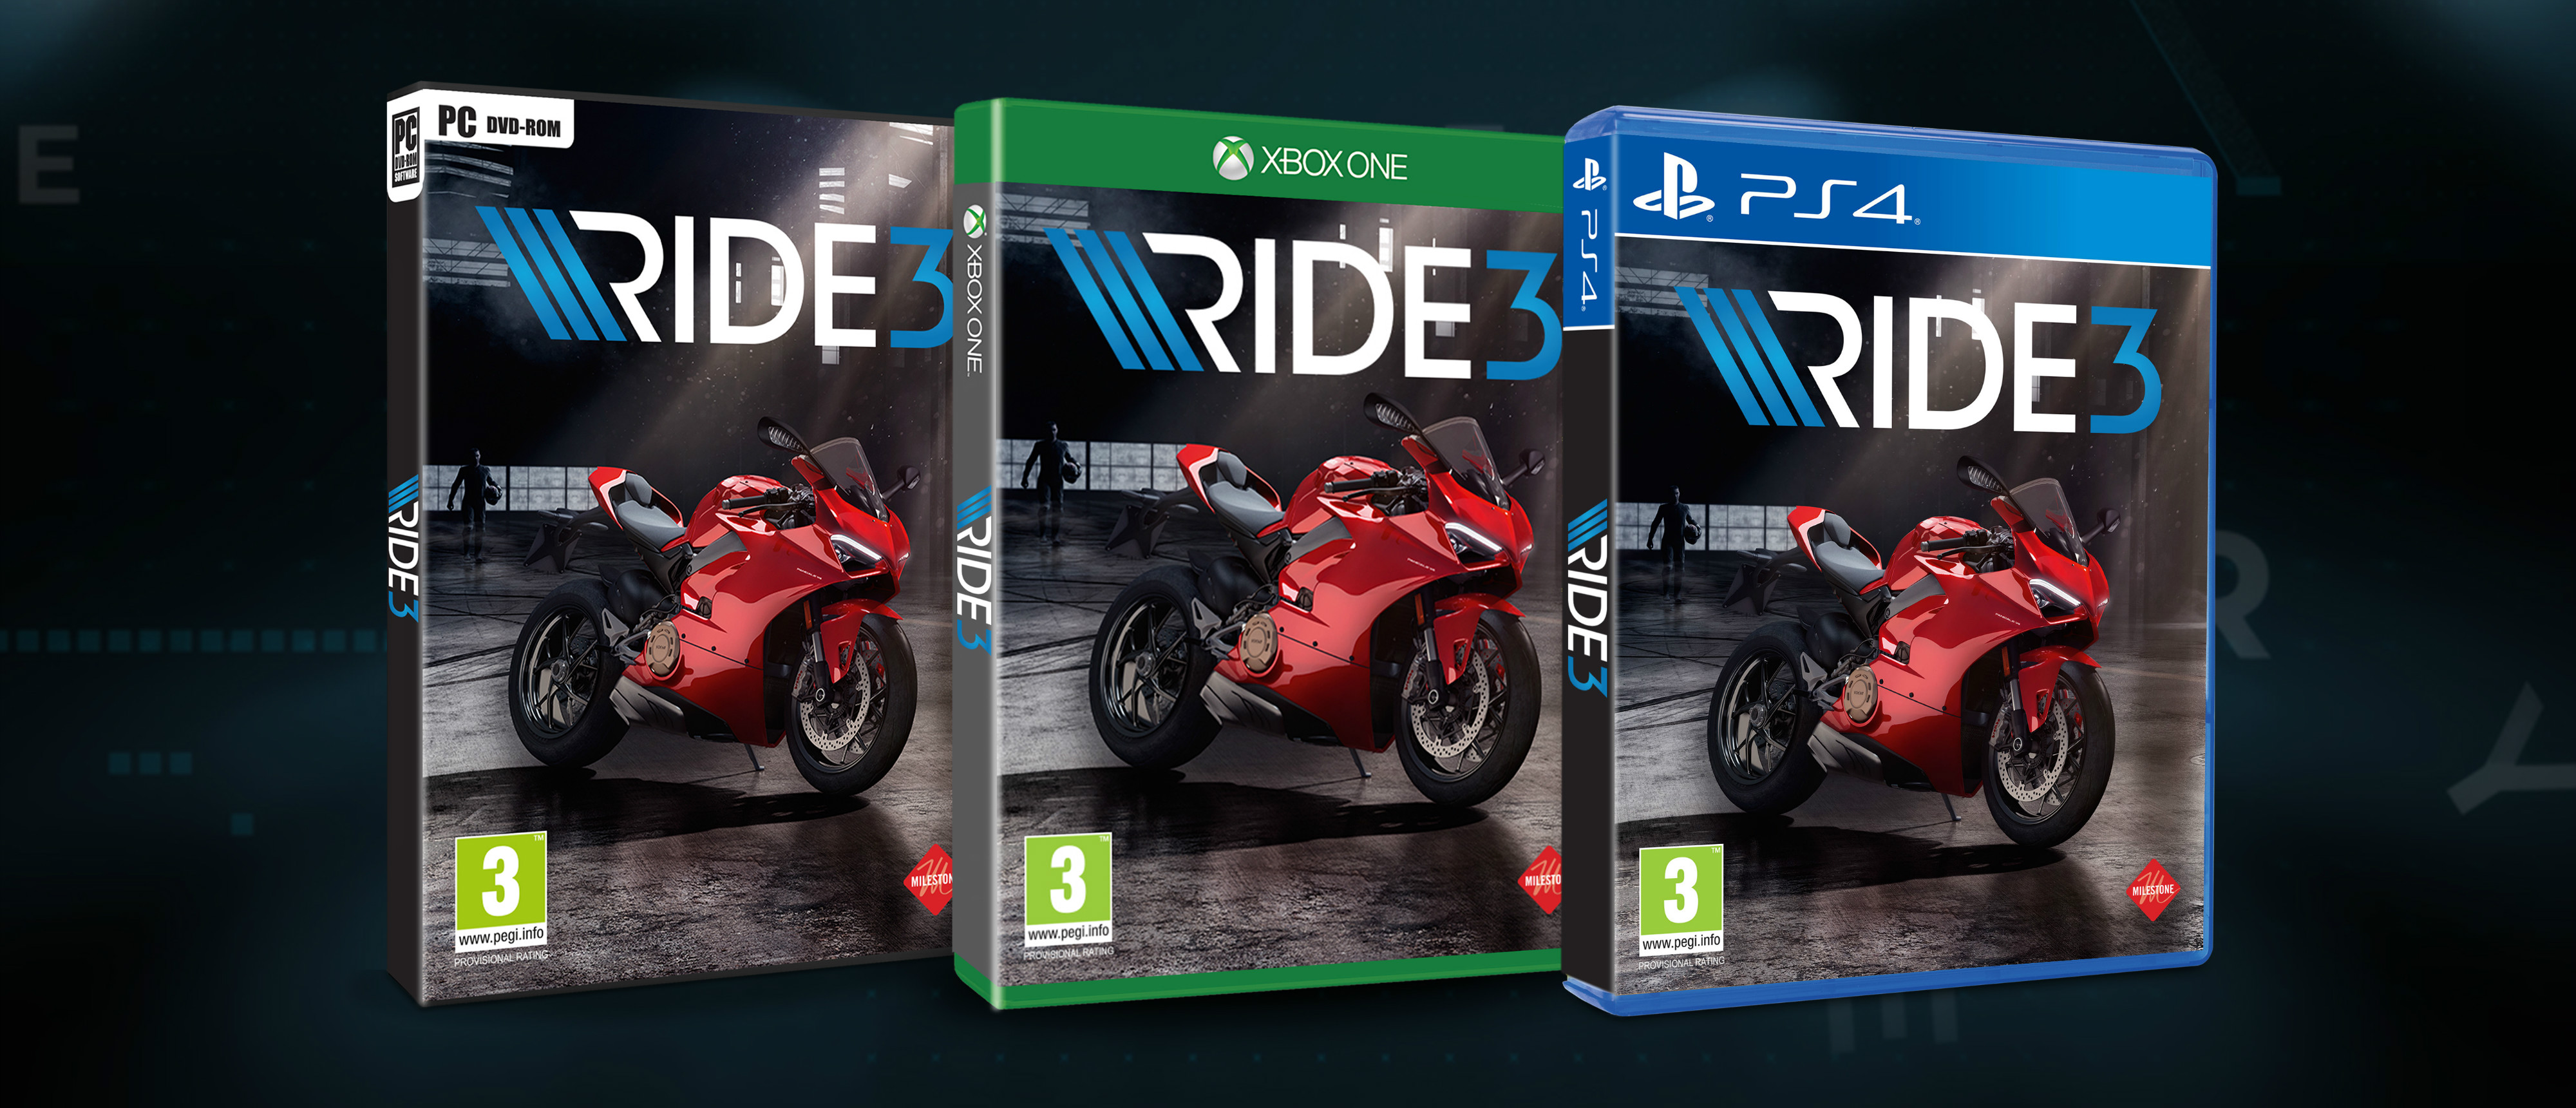 19 Ducati bikes are featured in 'Ride 3', including the Panigale V4, 916, Monster 900 and Scrambler Icon.